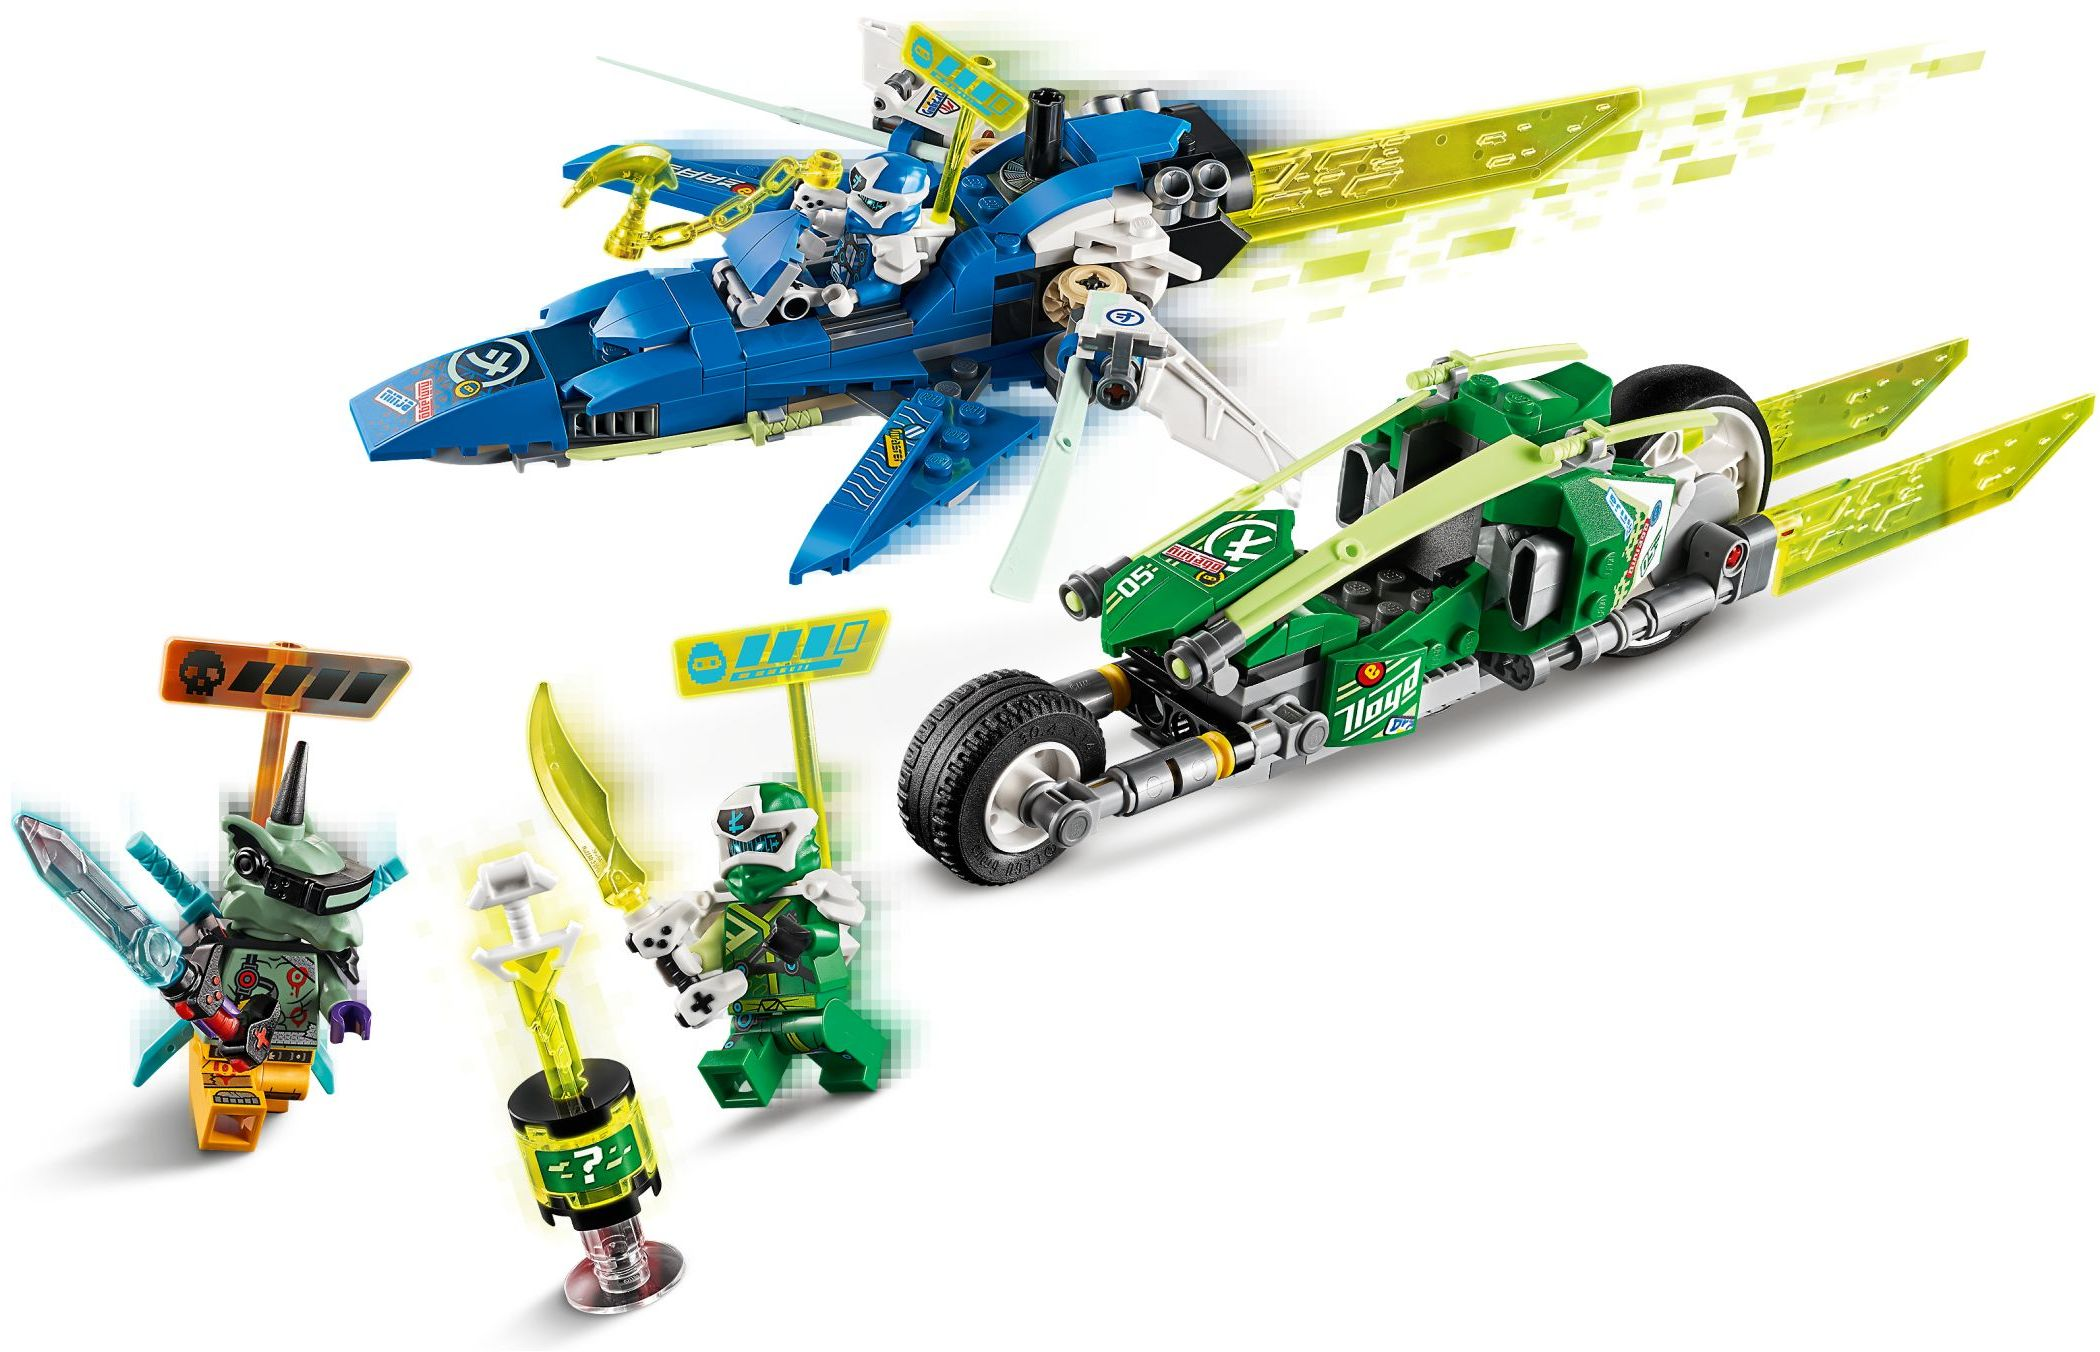 LEGO Ninjago - Jay and Lloyd